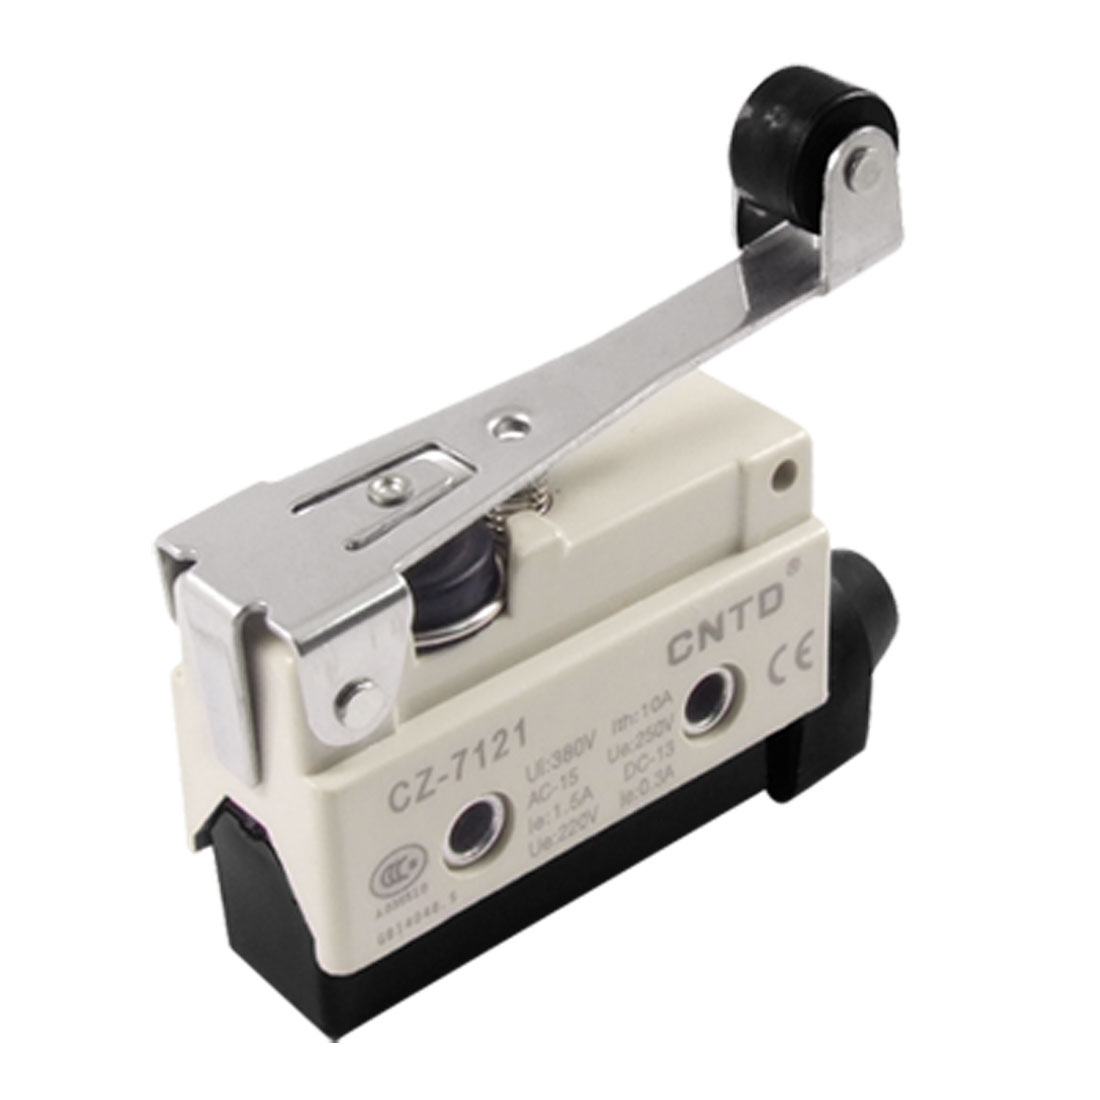 CZ-7121 Ui 380V Ith 10A Long Hinge Roller Lever Enclosed Limit Switch